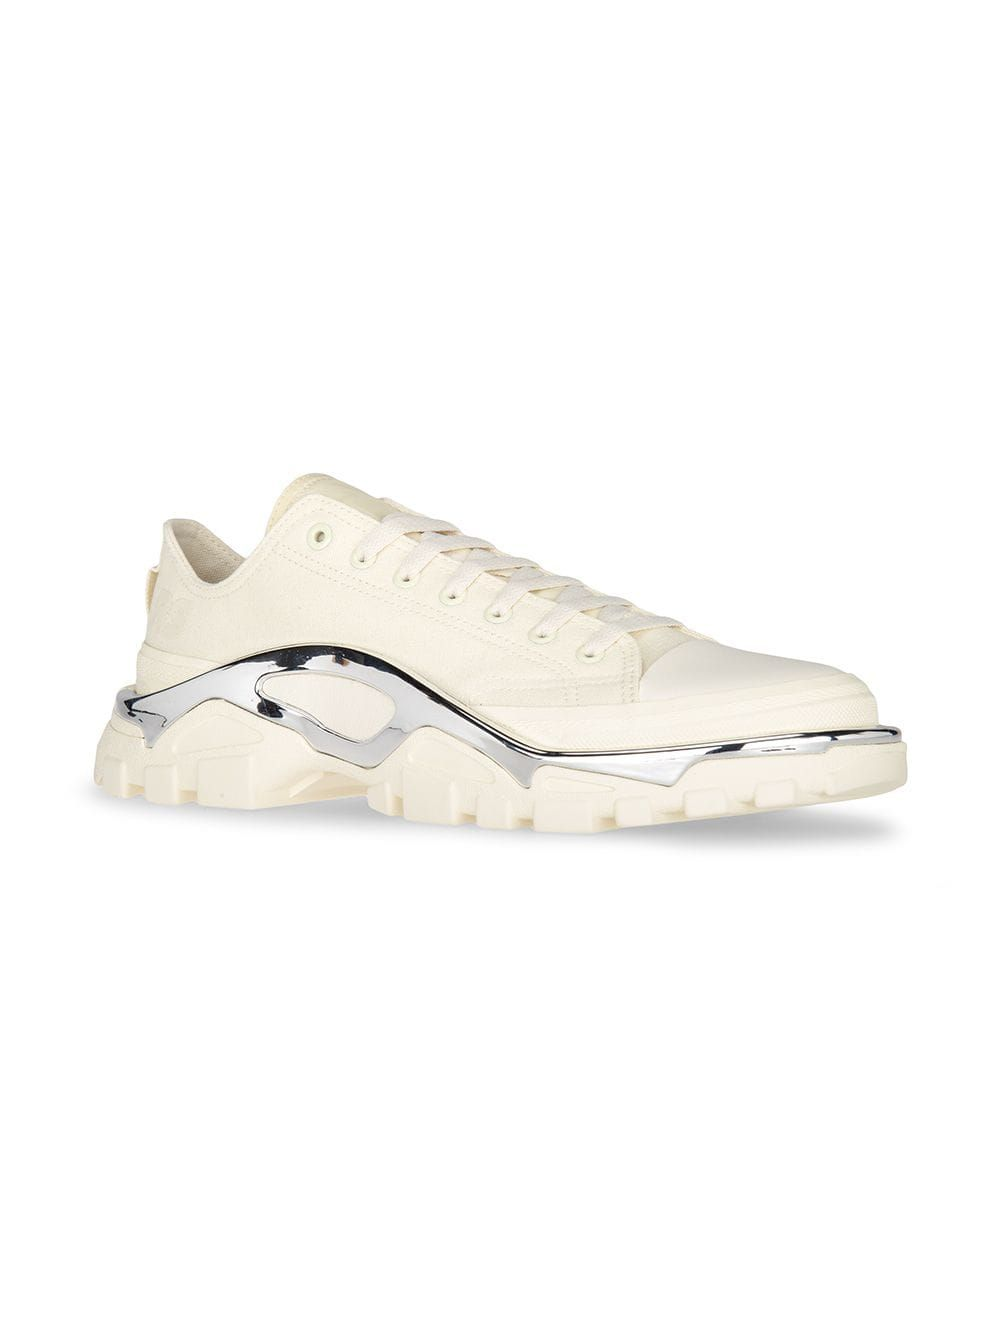 cce1b04d6a15a Adidas By Raf Simons Detroit Runner Low Top Sneakers in 2018